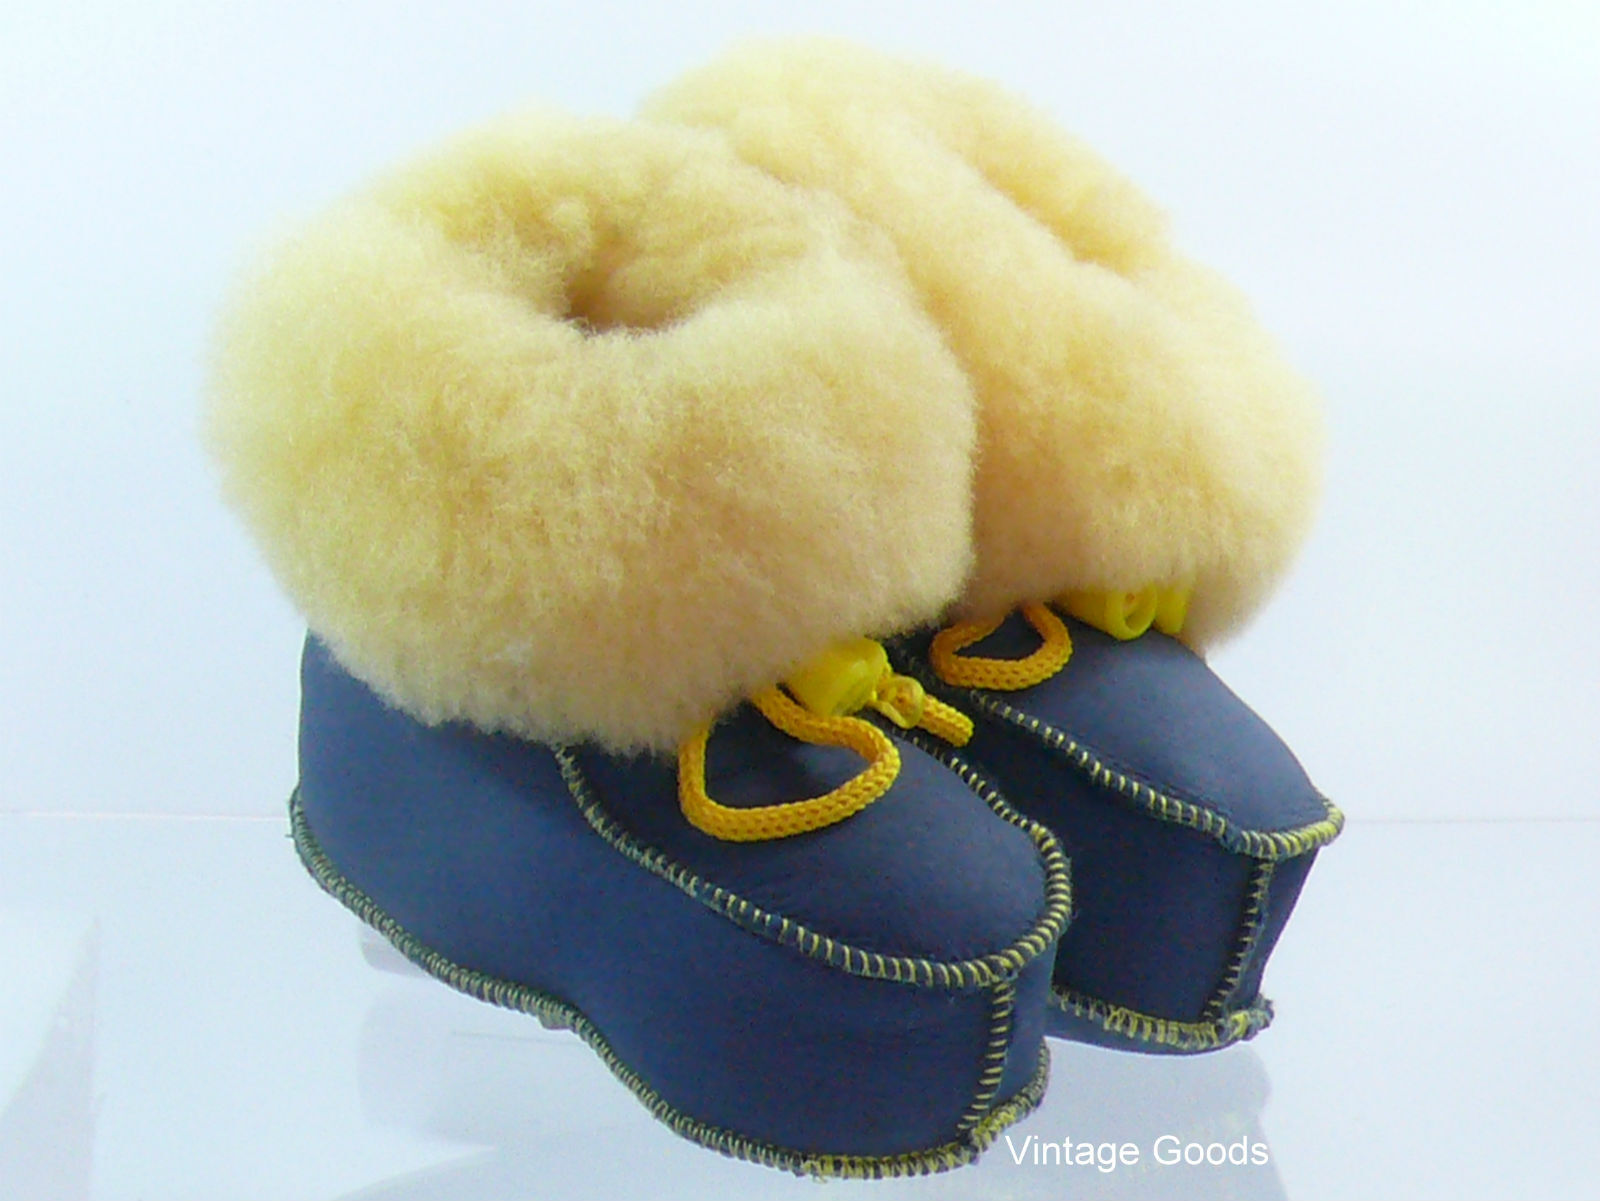 SHEEPSKIN SLIPPERS/BOOTS FOR BABY 100% GENUINE LEATHER UNISEX SIZE  5/6